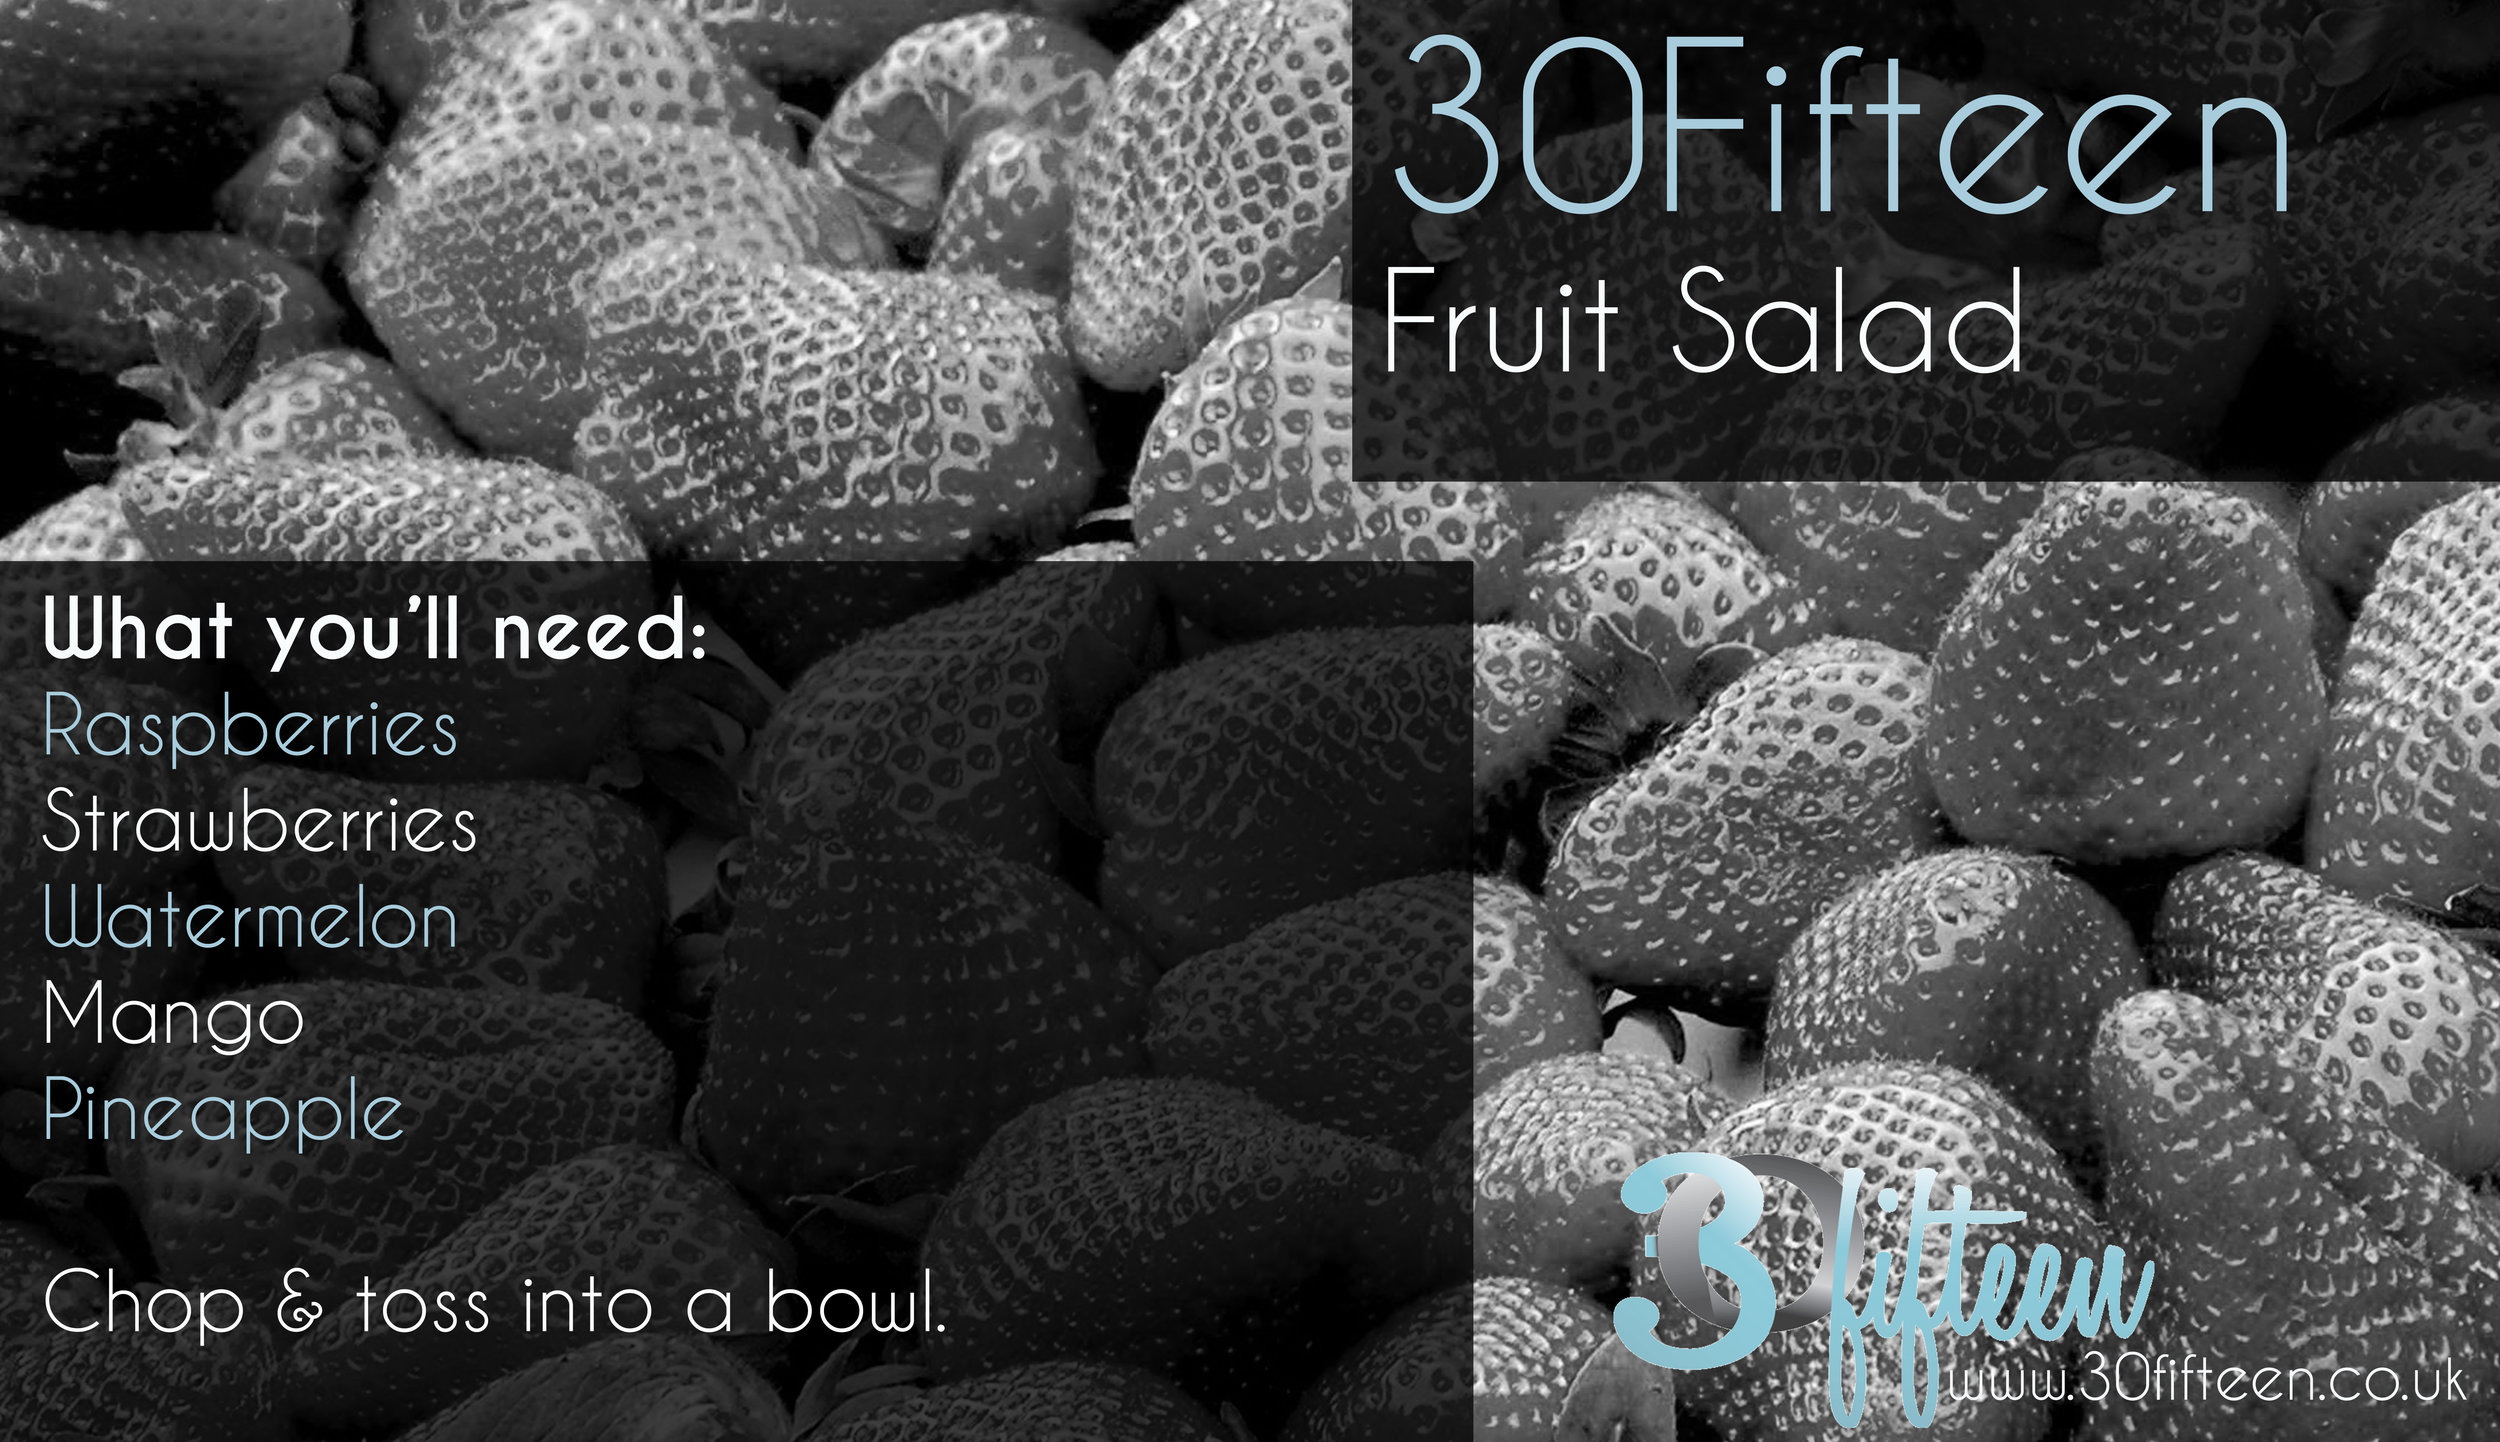 30Fifteen Fruit Salad Recipe